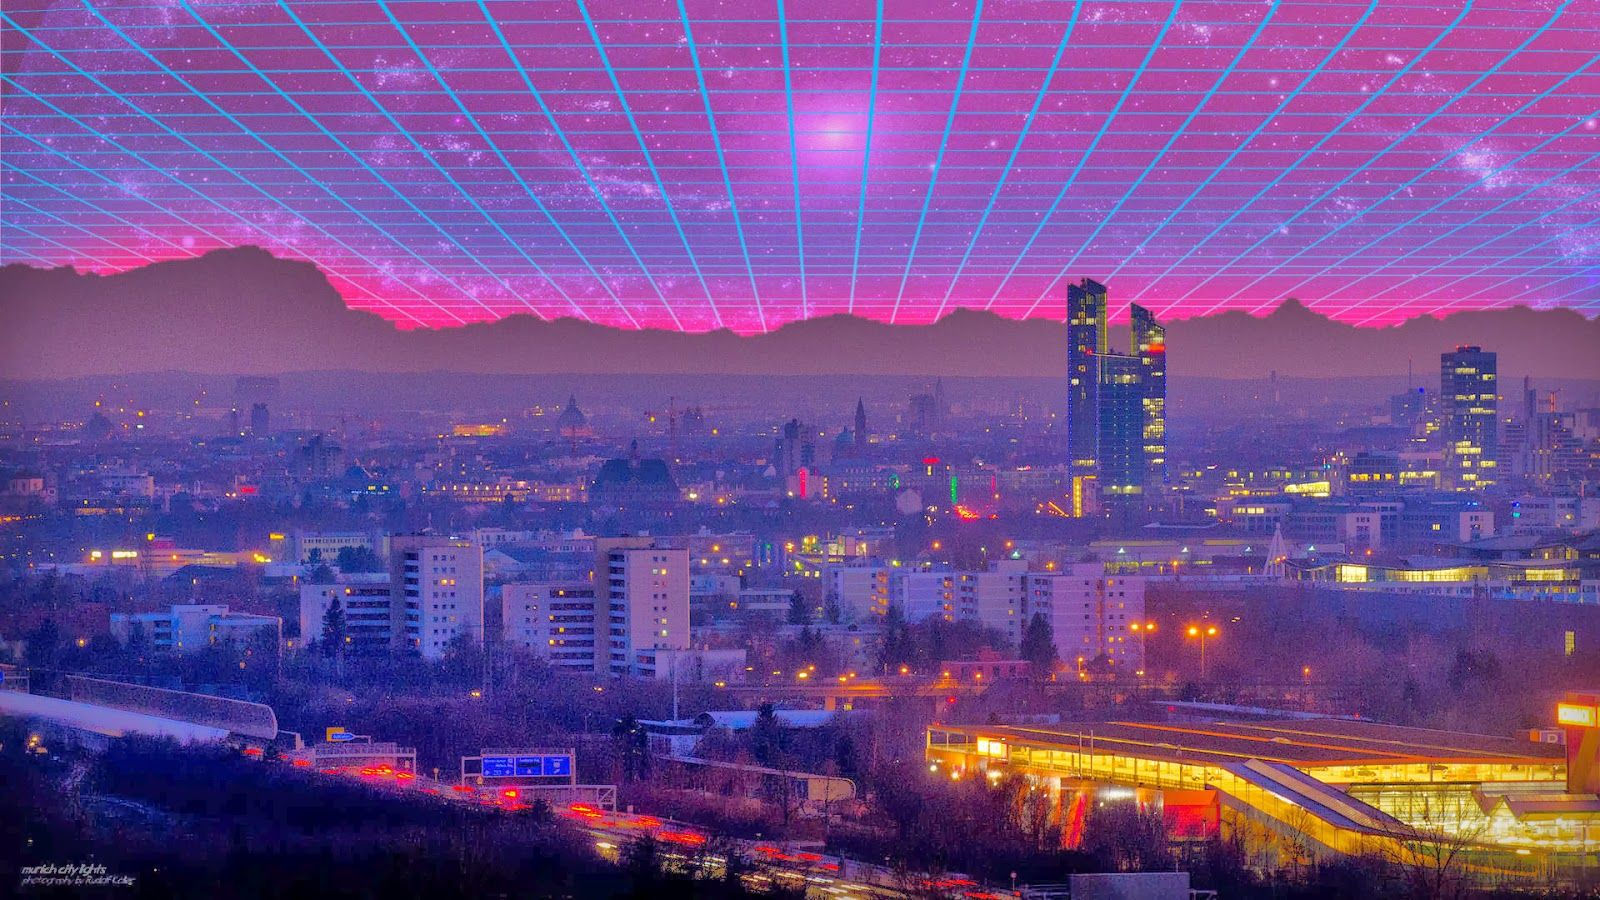 80s background neon   Google Search Synthwave 80s background 1600x900